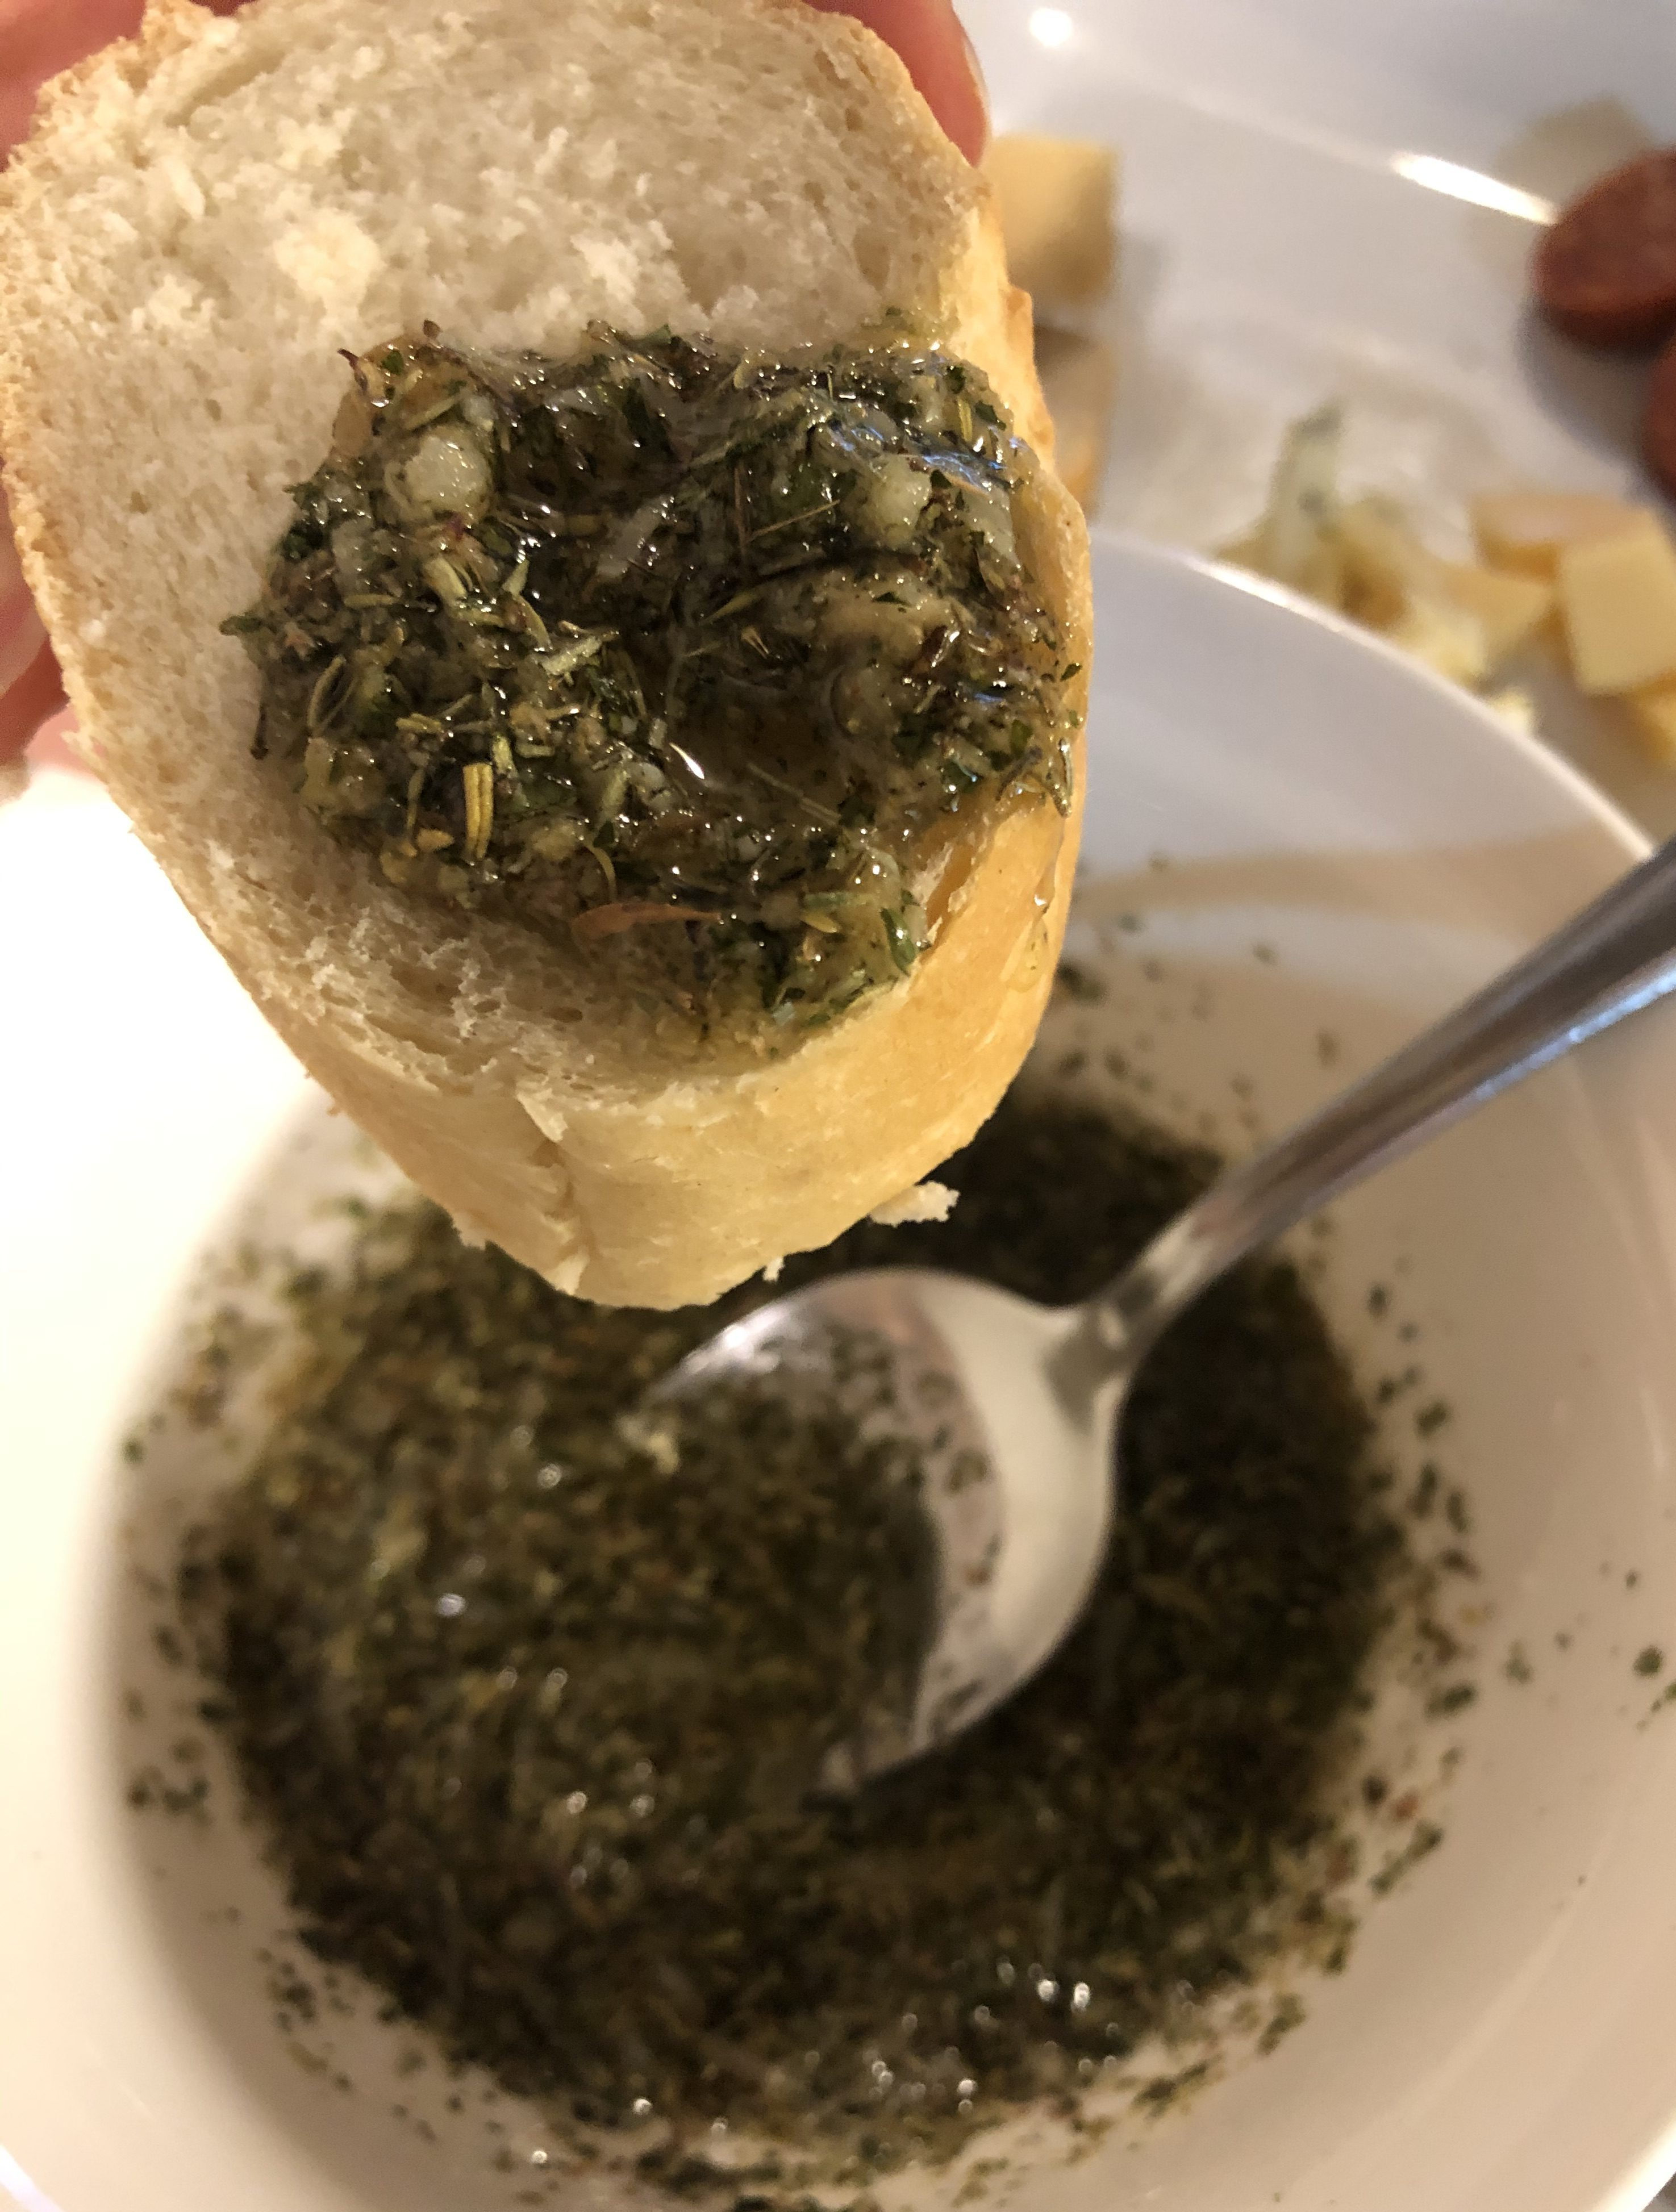 How to Make Olive Oil Dip